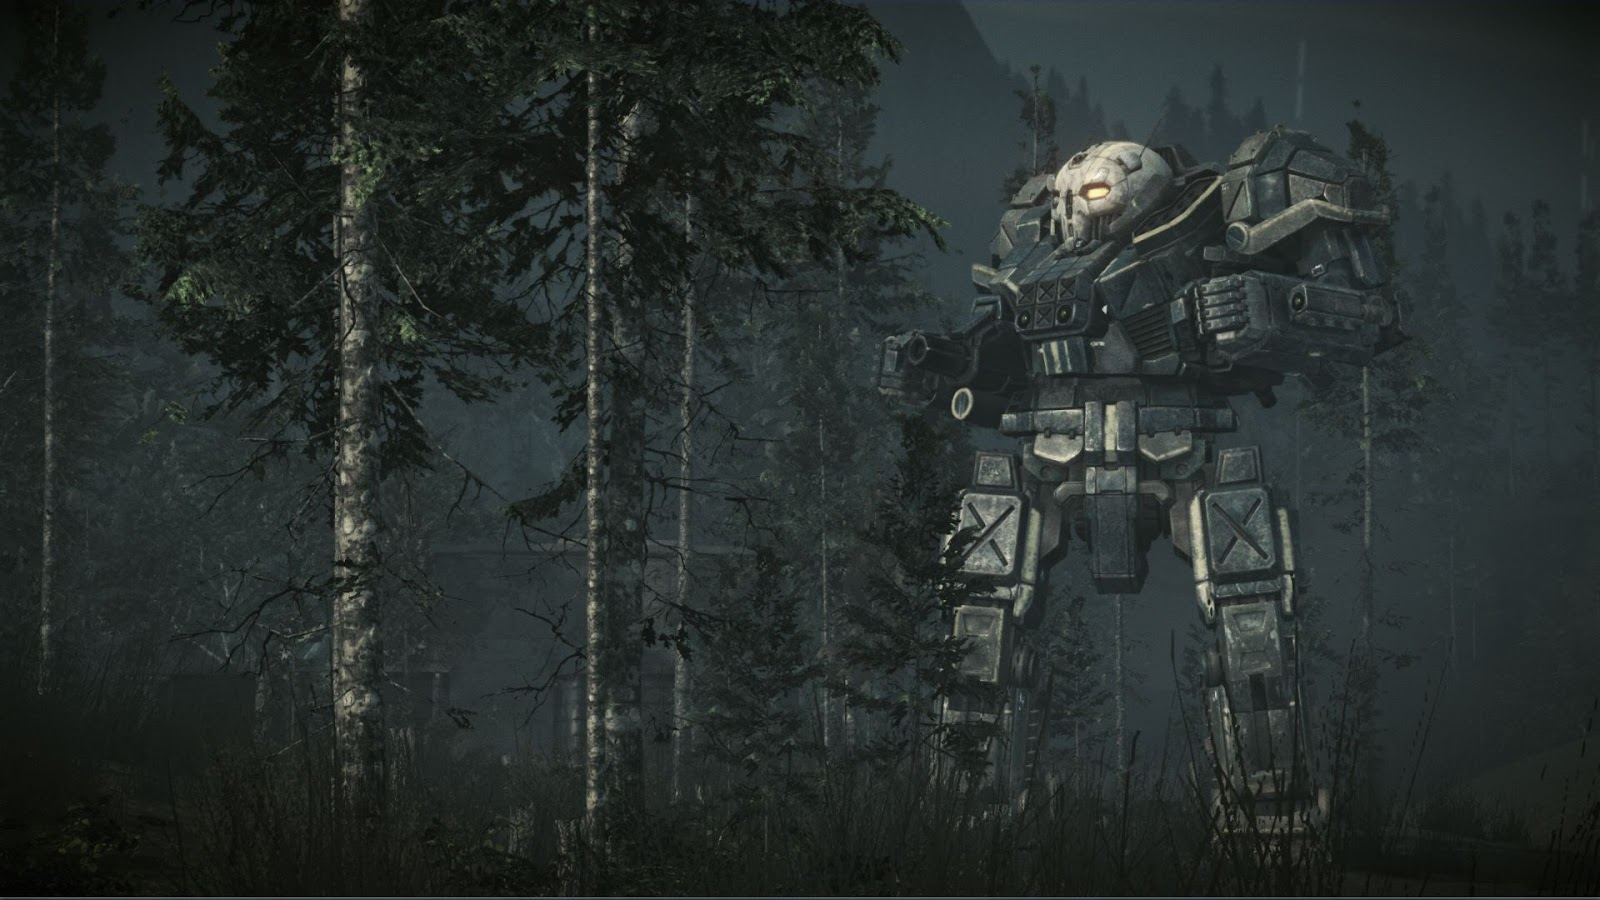 mechwarrior online 3 mechwarrior online wallpaper download 3 1600x900